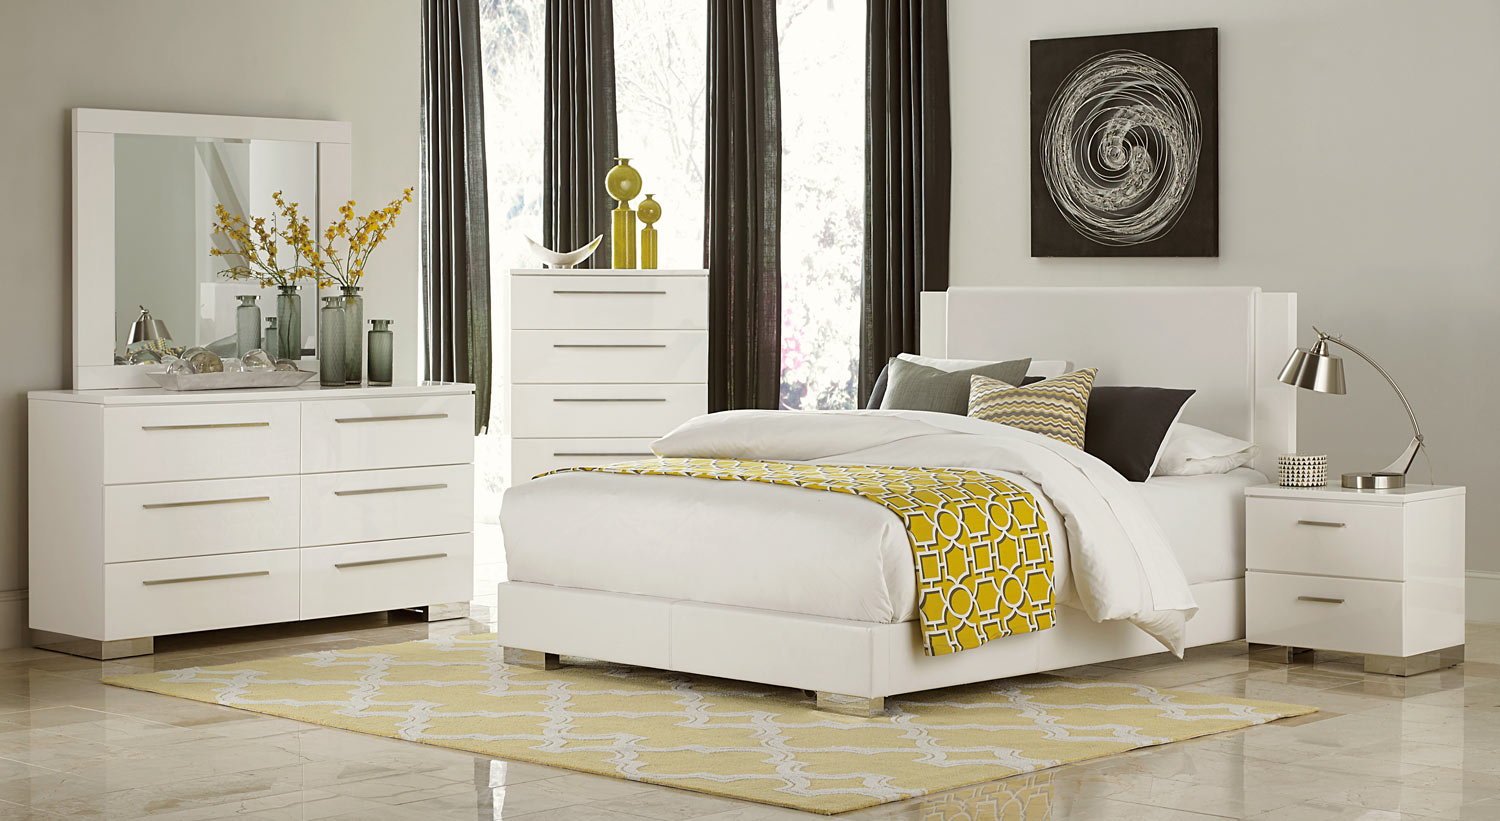 Homelegance Linnea Bedroom Set   High Gloss White